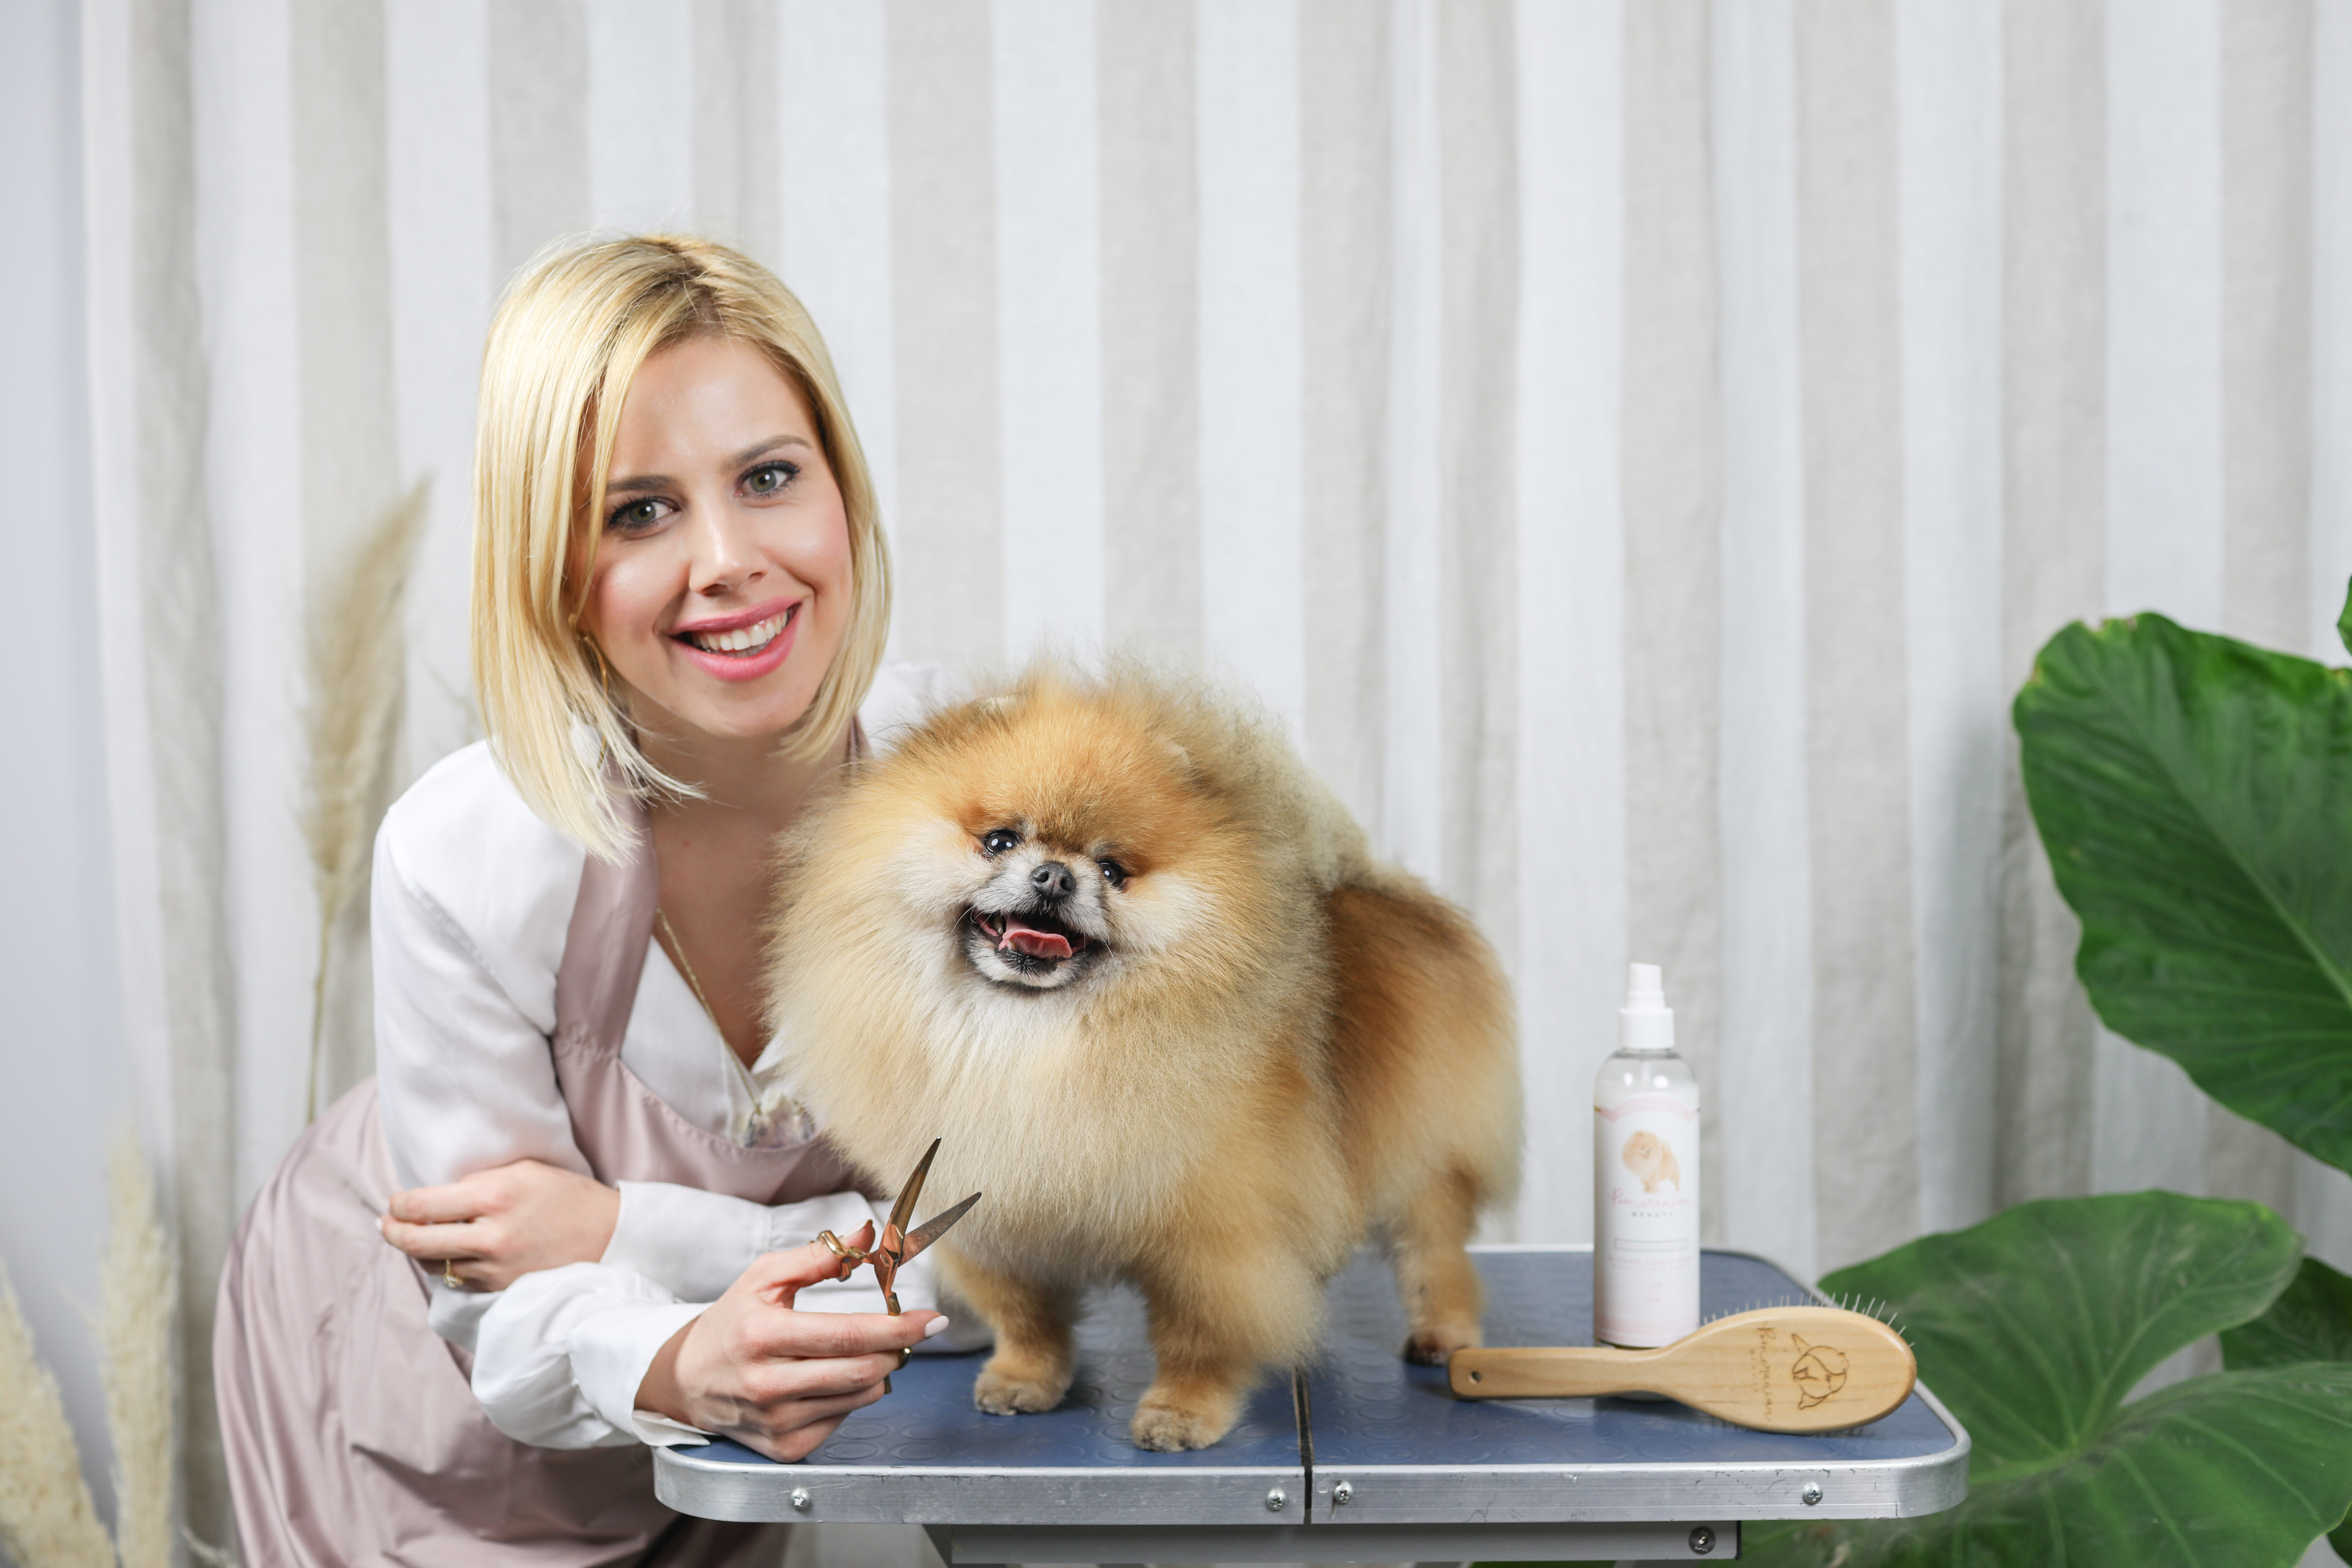 Tutorial Video! Pomeranian Grooming - How to Cut Pomeranian Hair